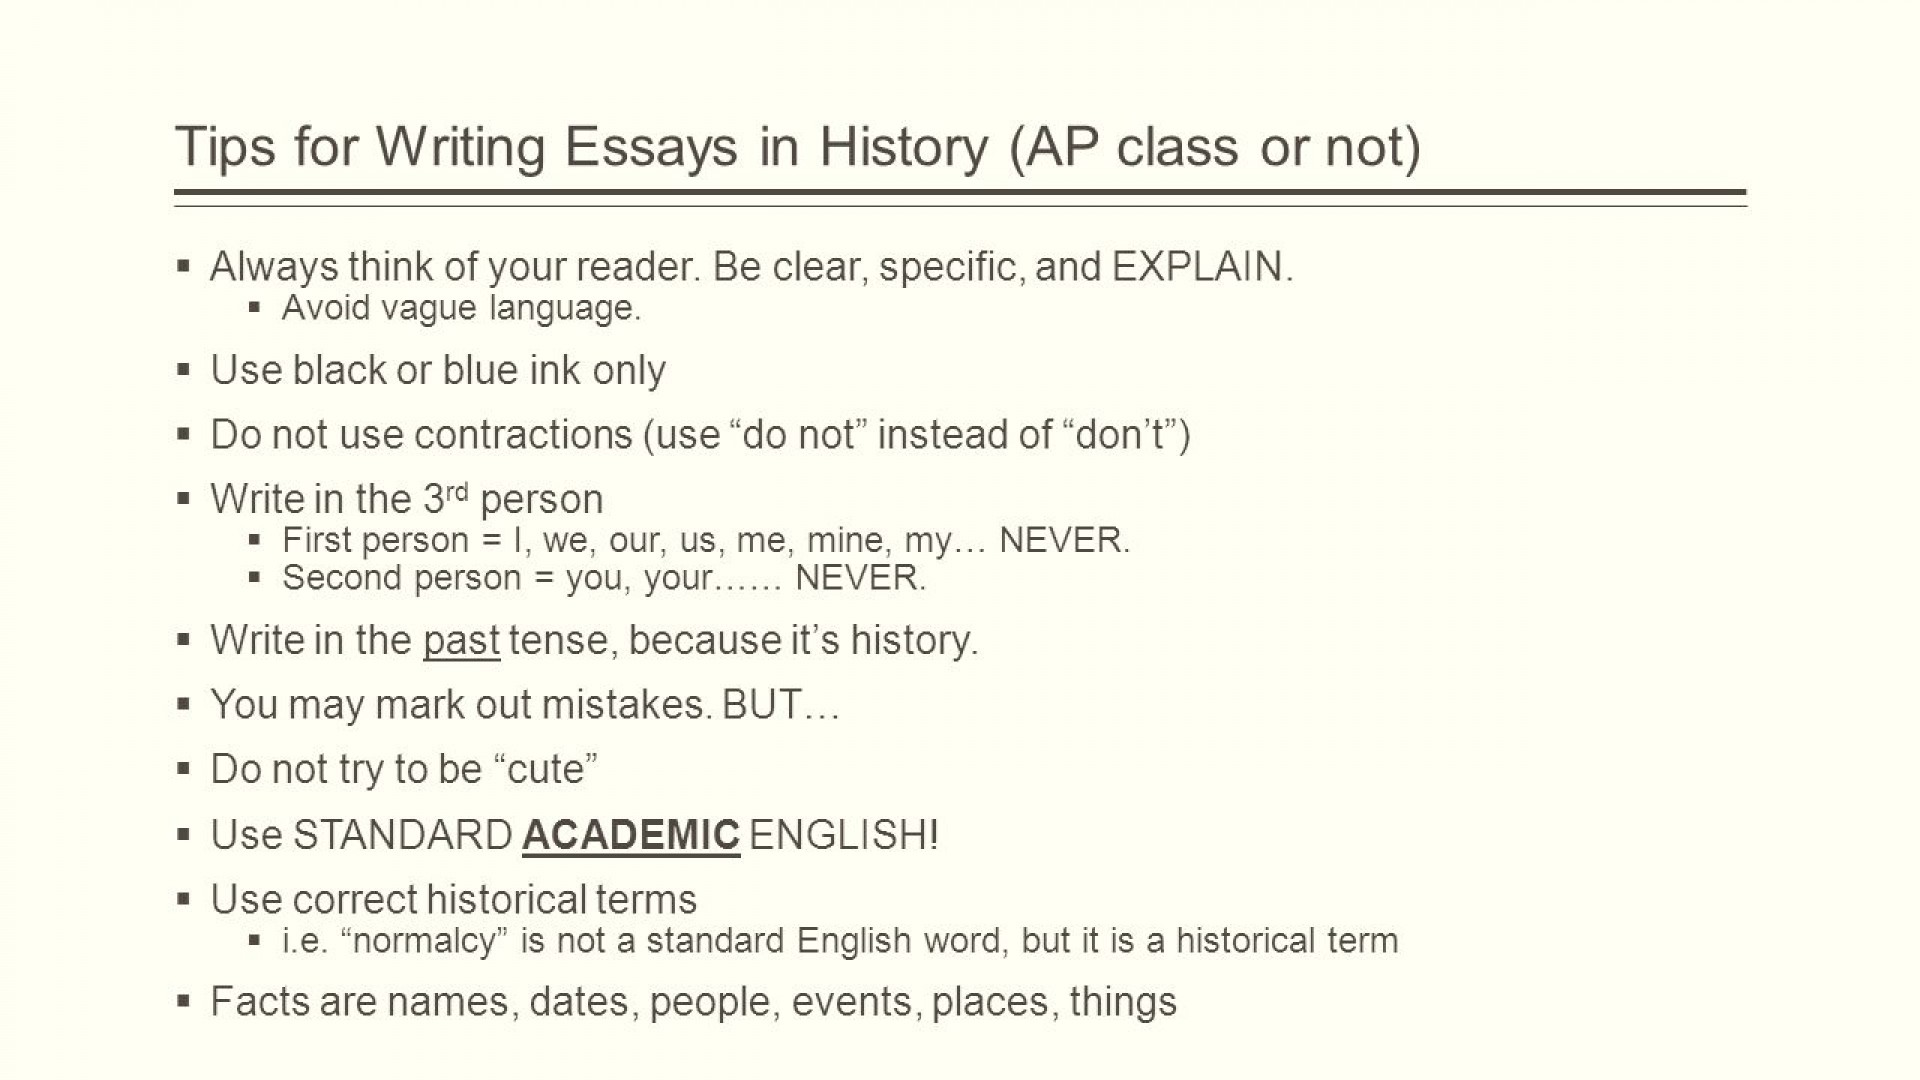 002 Essay Example How To Write Long The Question Ppt Video Online Download For Ap World Hi Fast Proposal Apush With Little Information Us History In One Night Dreaded A Continuity And Change Personal 1920